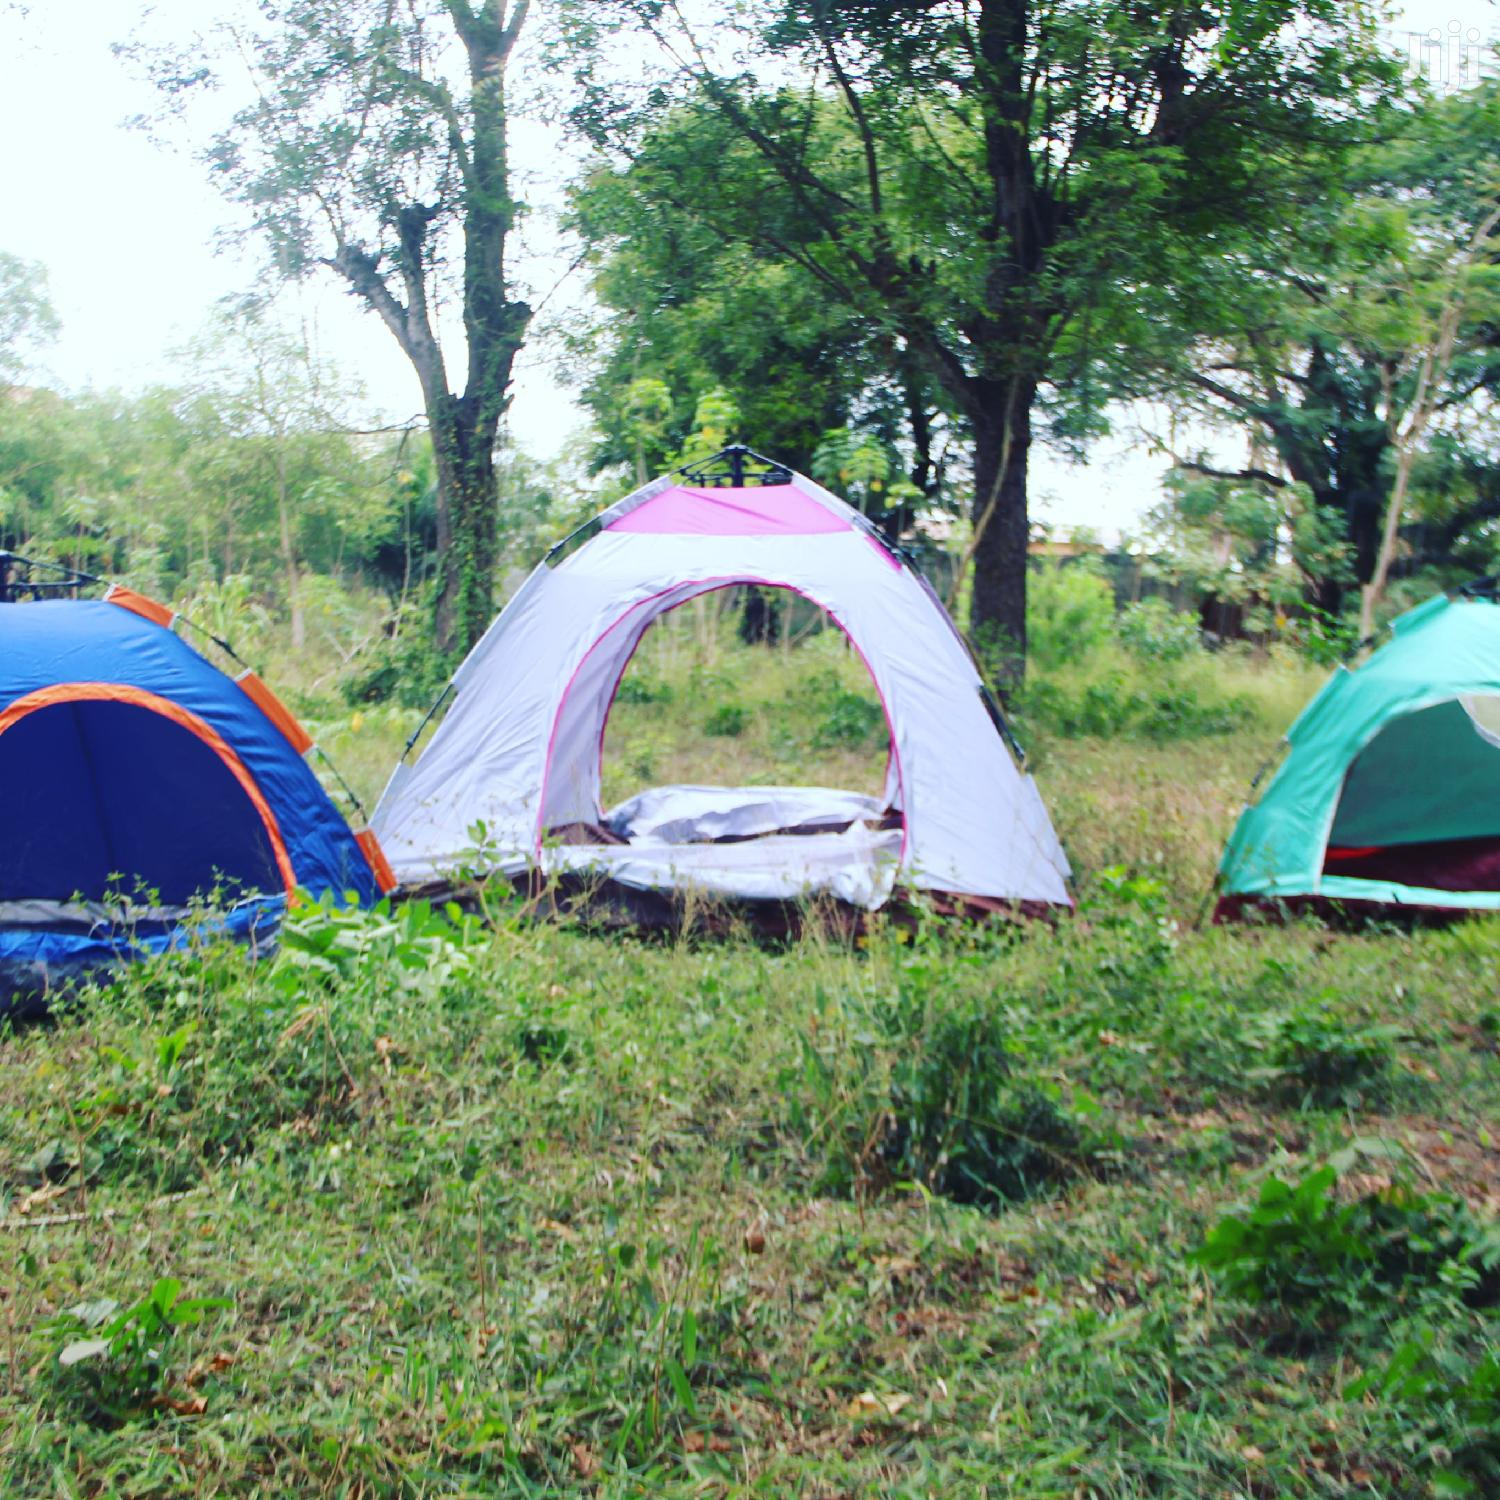 Automatic Tent For 8 Peoples   Camping Gear for sale in Ilala, Dar es Salaam, Tanzania